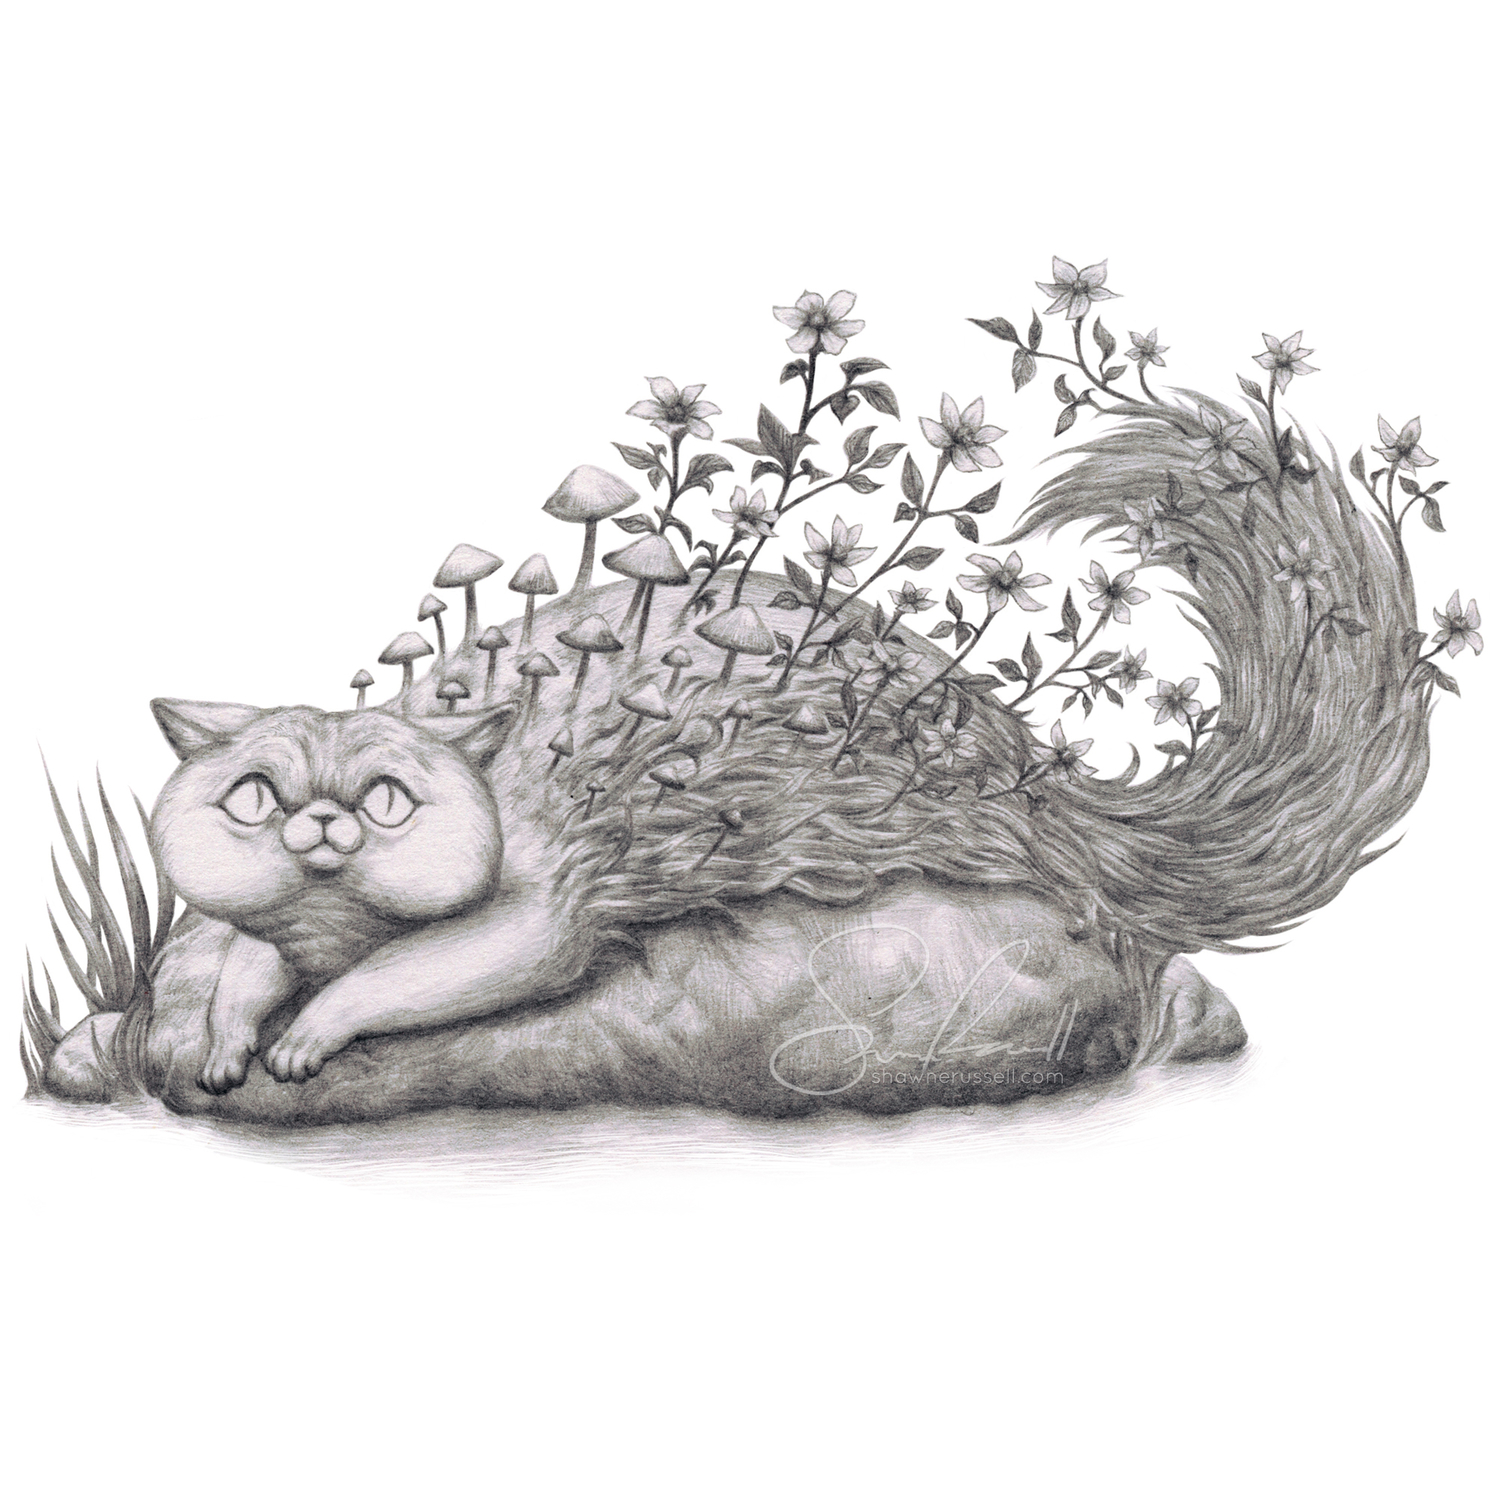 Forest Cat Artwork by Shawn E Russell